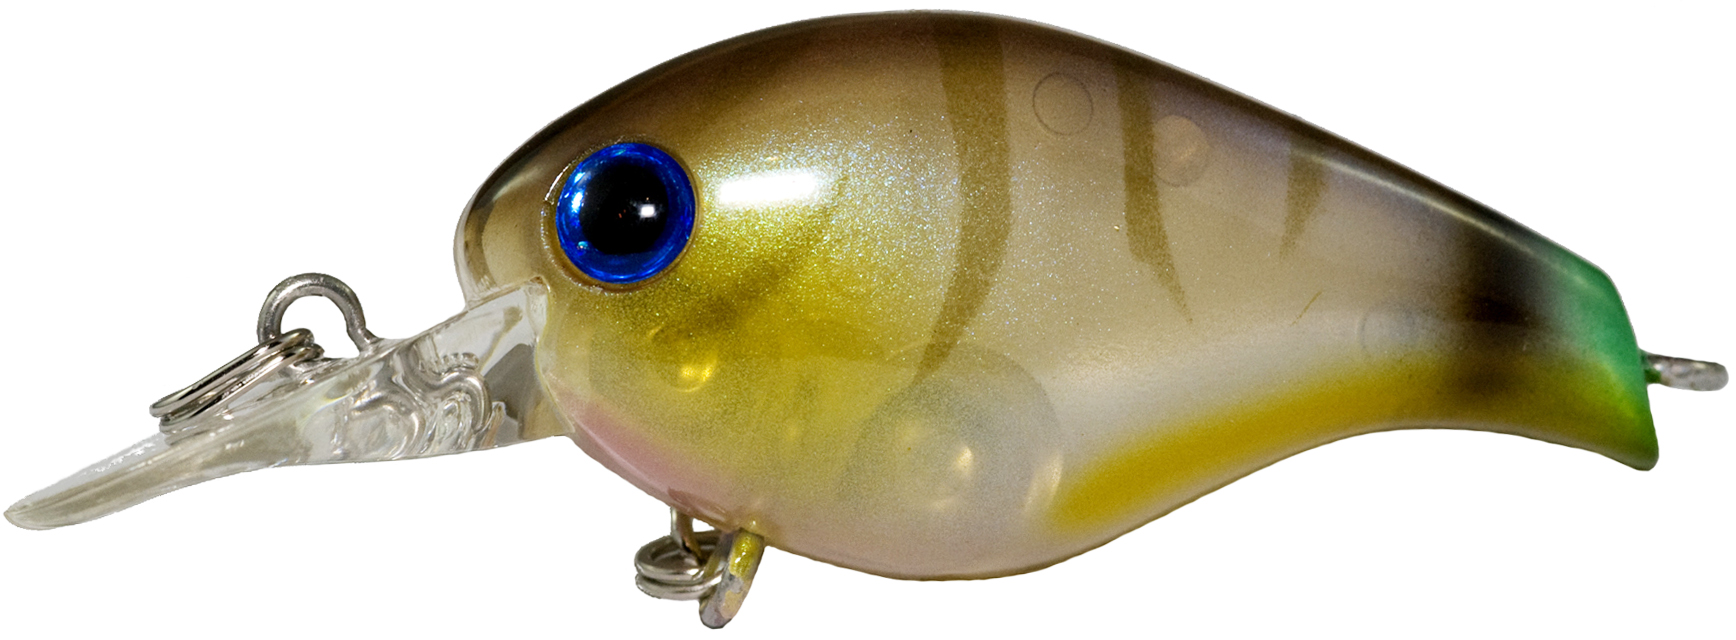 Details about  /Lucky Craft Clutch MR fishing lures original range of colors